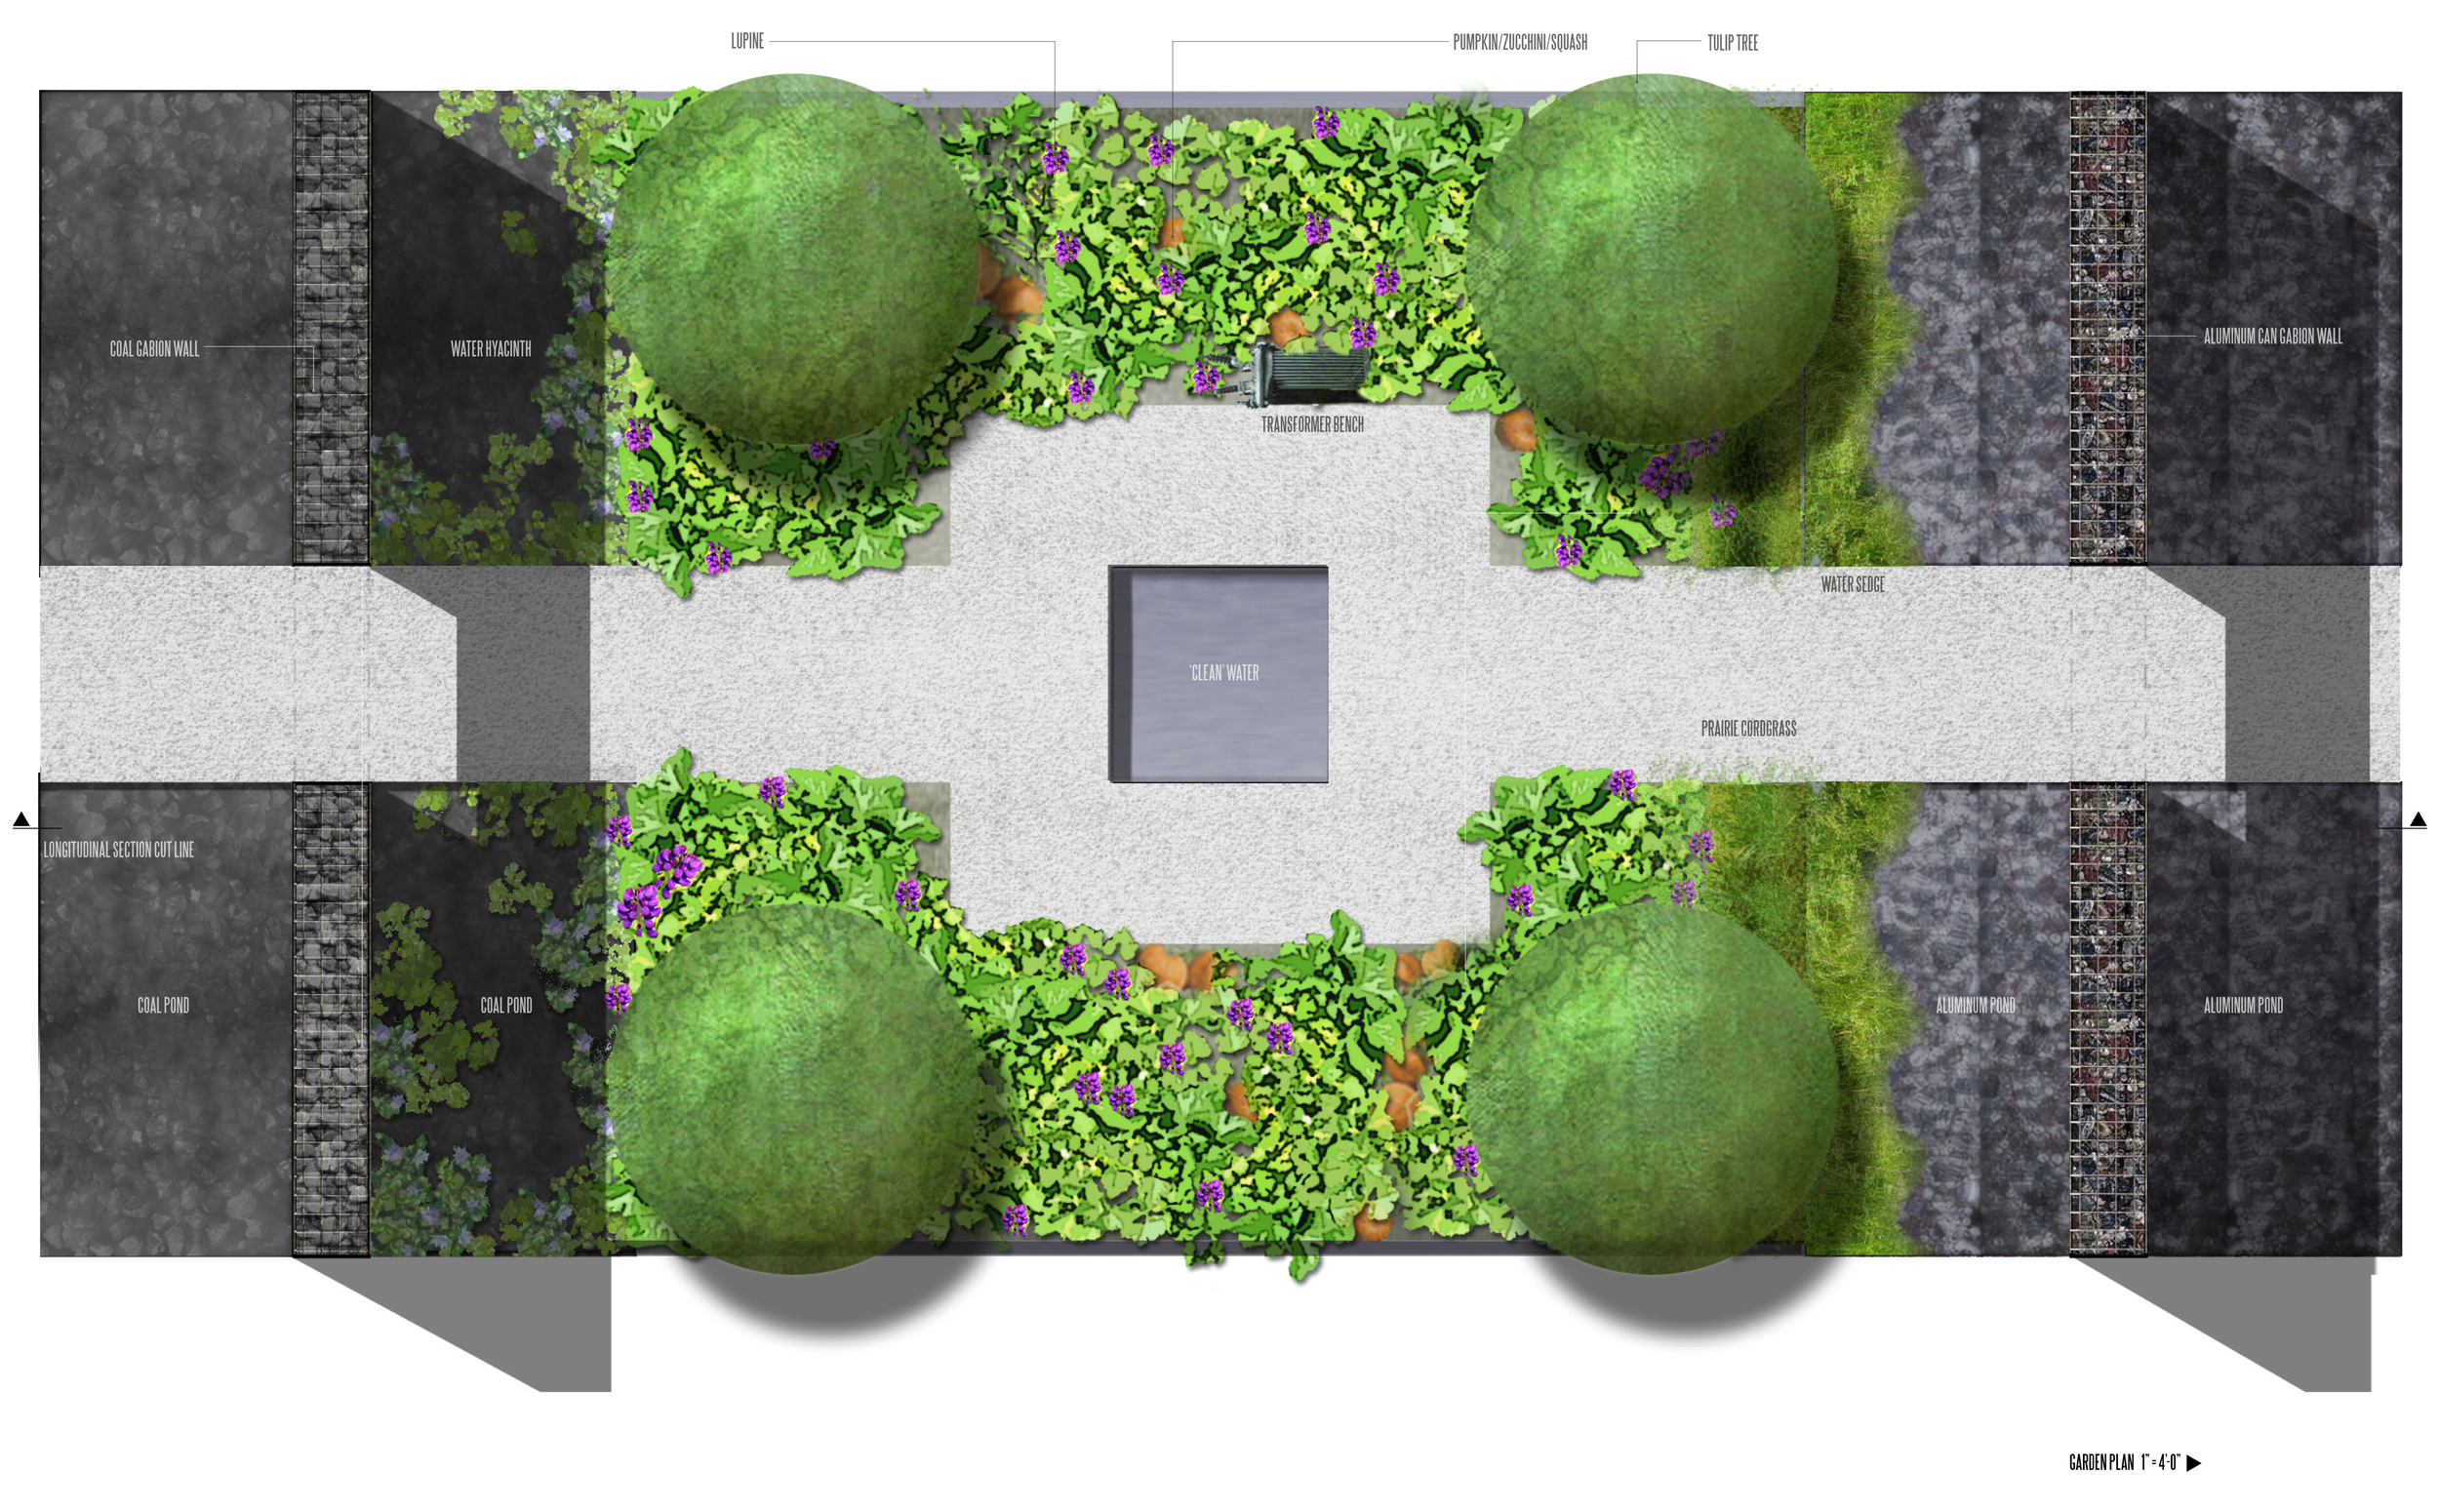 A plan view of the water. On the 20 x 30 site, we isolate the garden by water. Users pass over water bodies having coal and aluminum liners, and through coal and aluminum gabion walls. The central garden is filled with remediative plans, and has old transistors at industrial scale (related to PCB pollution) as seats.